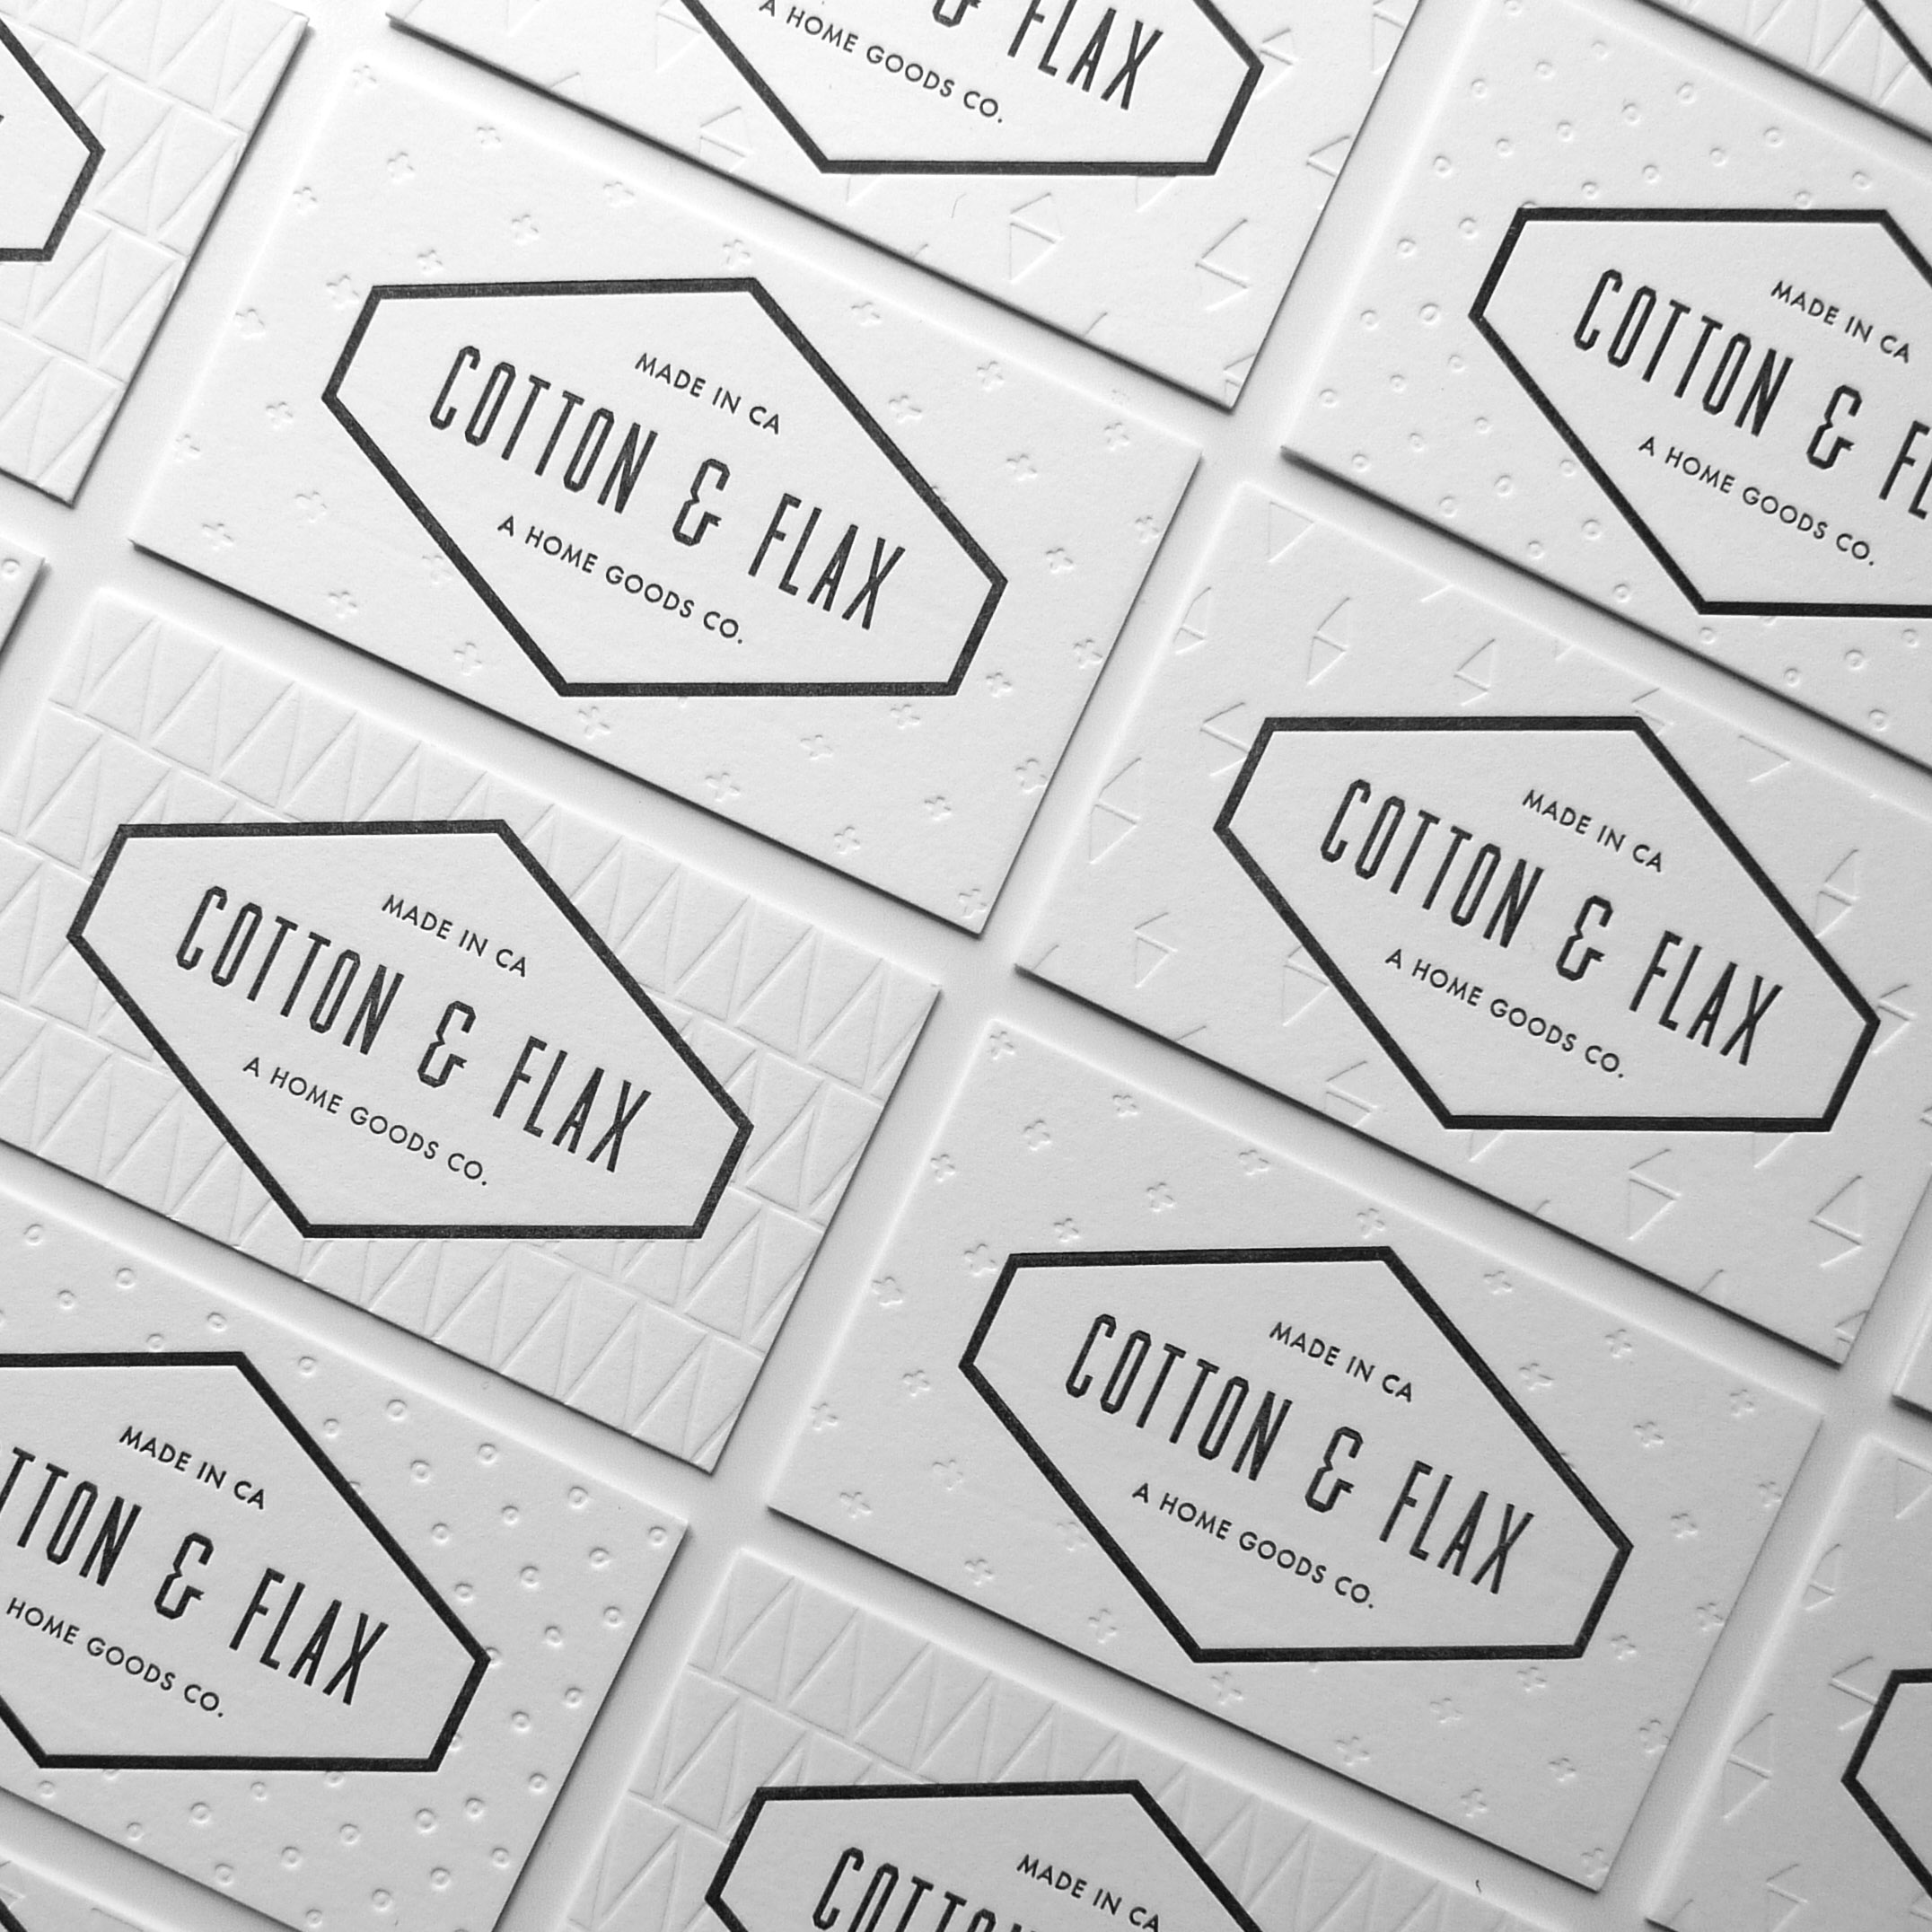 Cotton & Flax business cards   Cotton & Flax